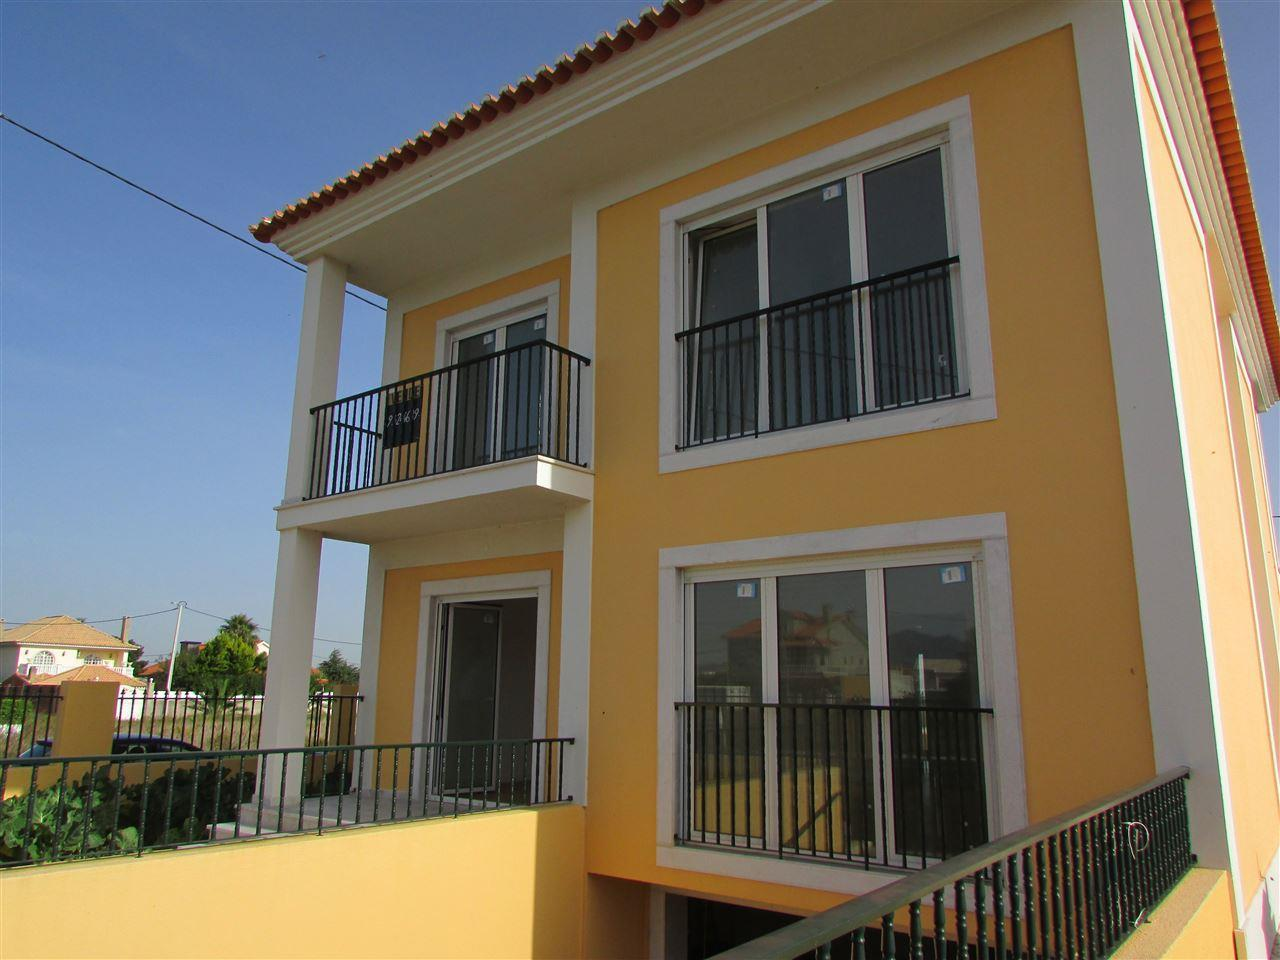 Tek Ailelik Ev için Satış at Detached house, 3 bedrooms, for Sale Cascais, Lisboa 2645-569 Portekiz